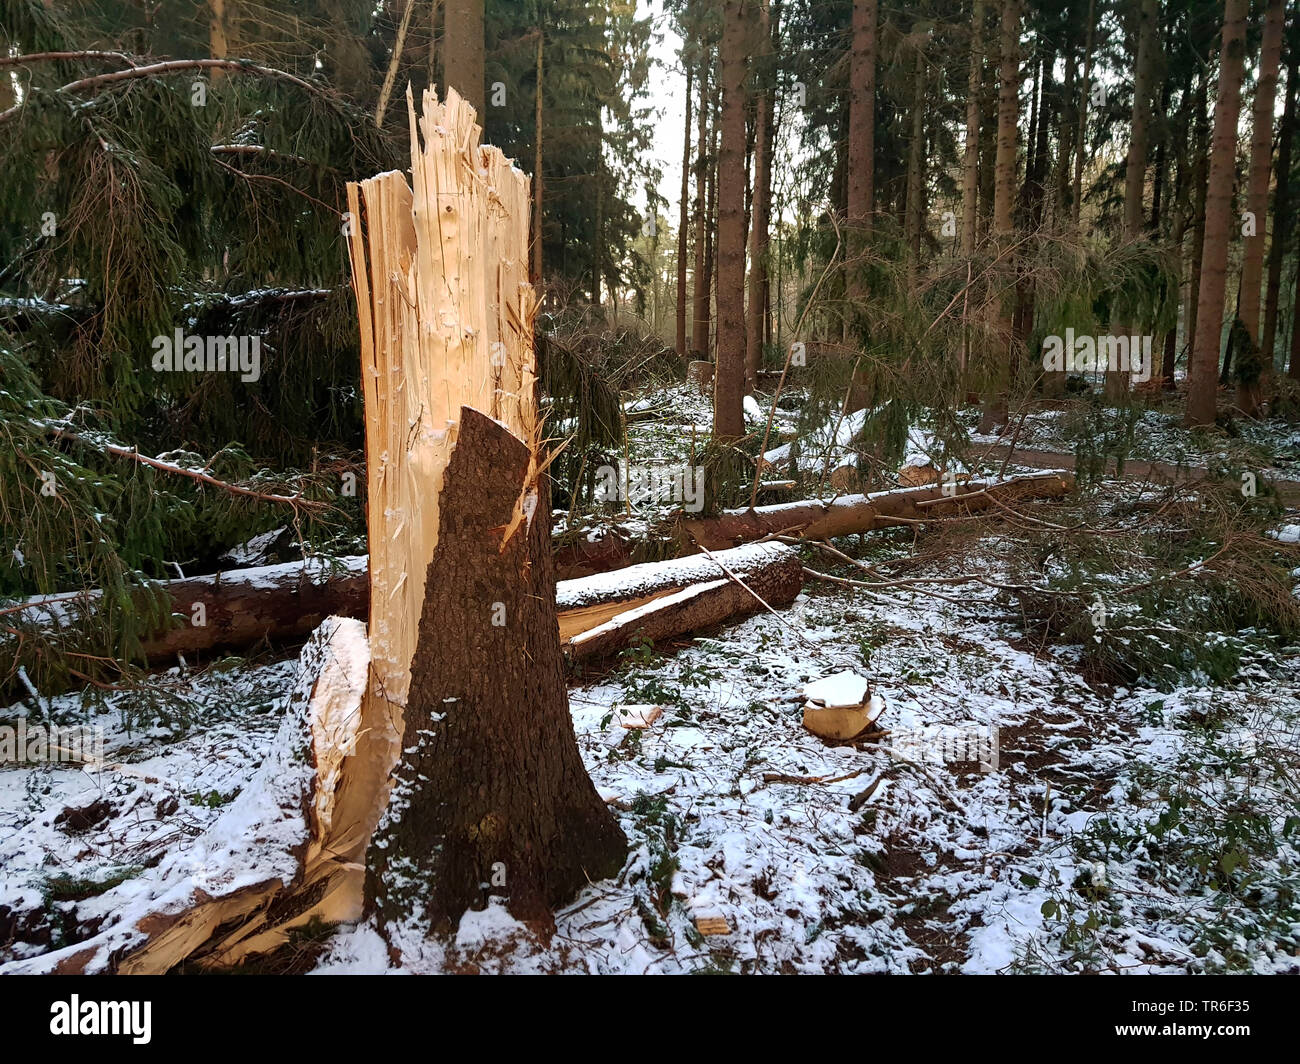 Norway spruce (Picea abies), broken trunk after a storm in winter, Germany, North Rhine-Westphalia - Stock Image